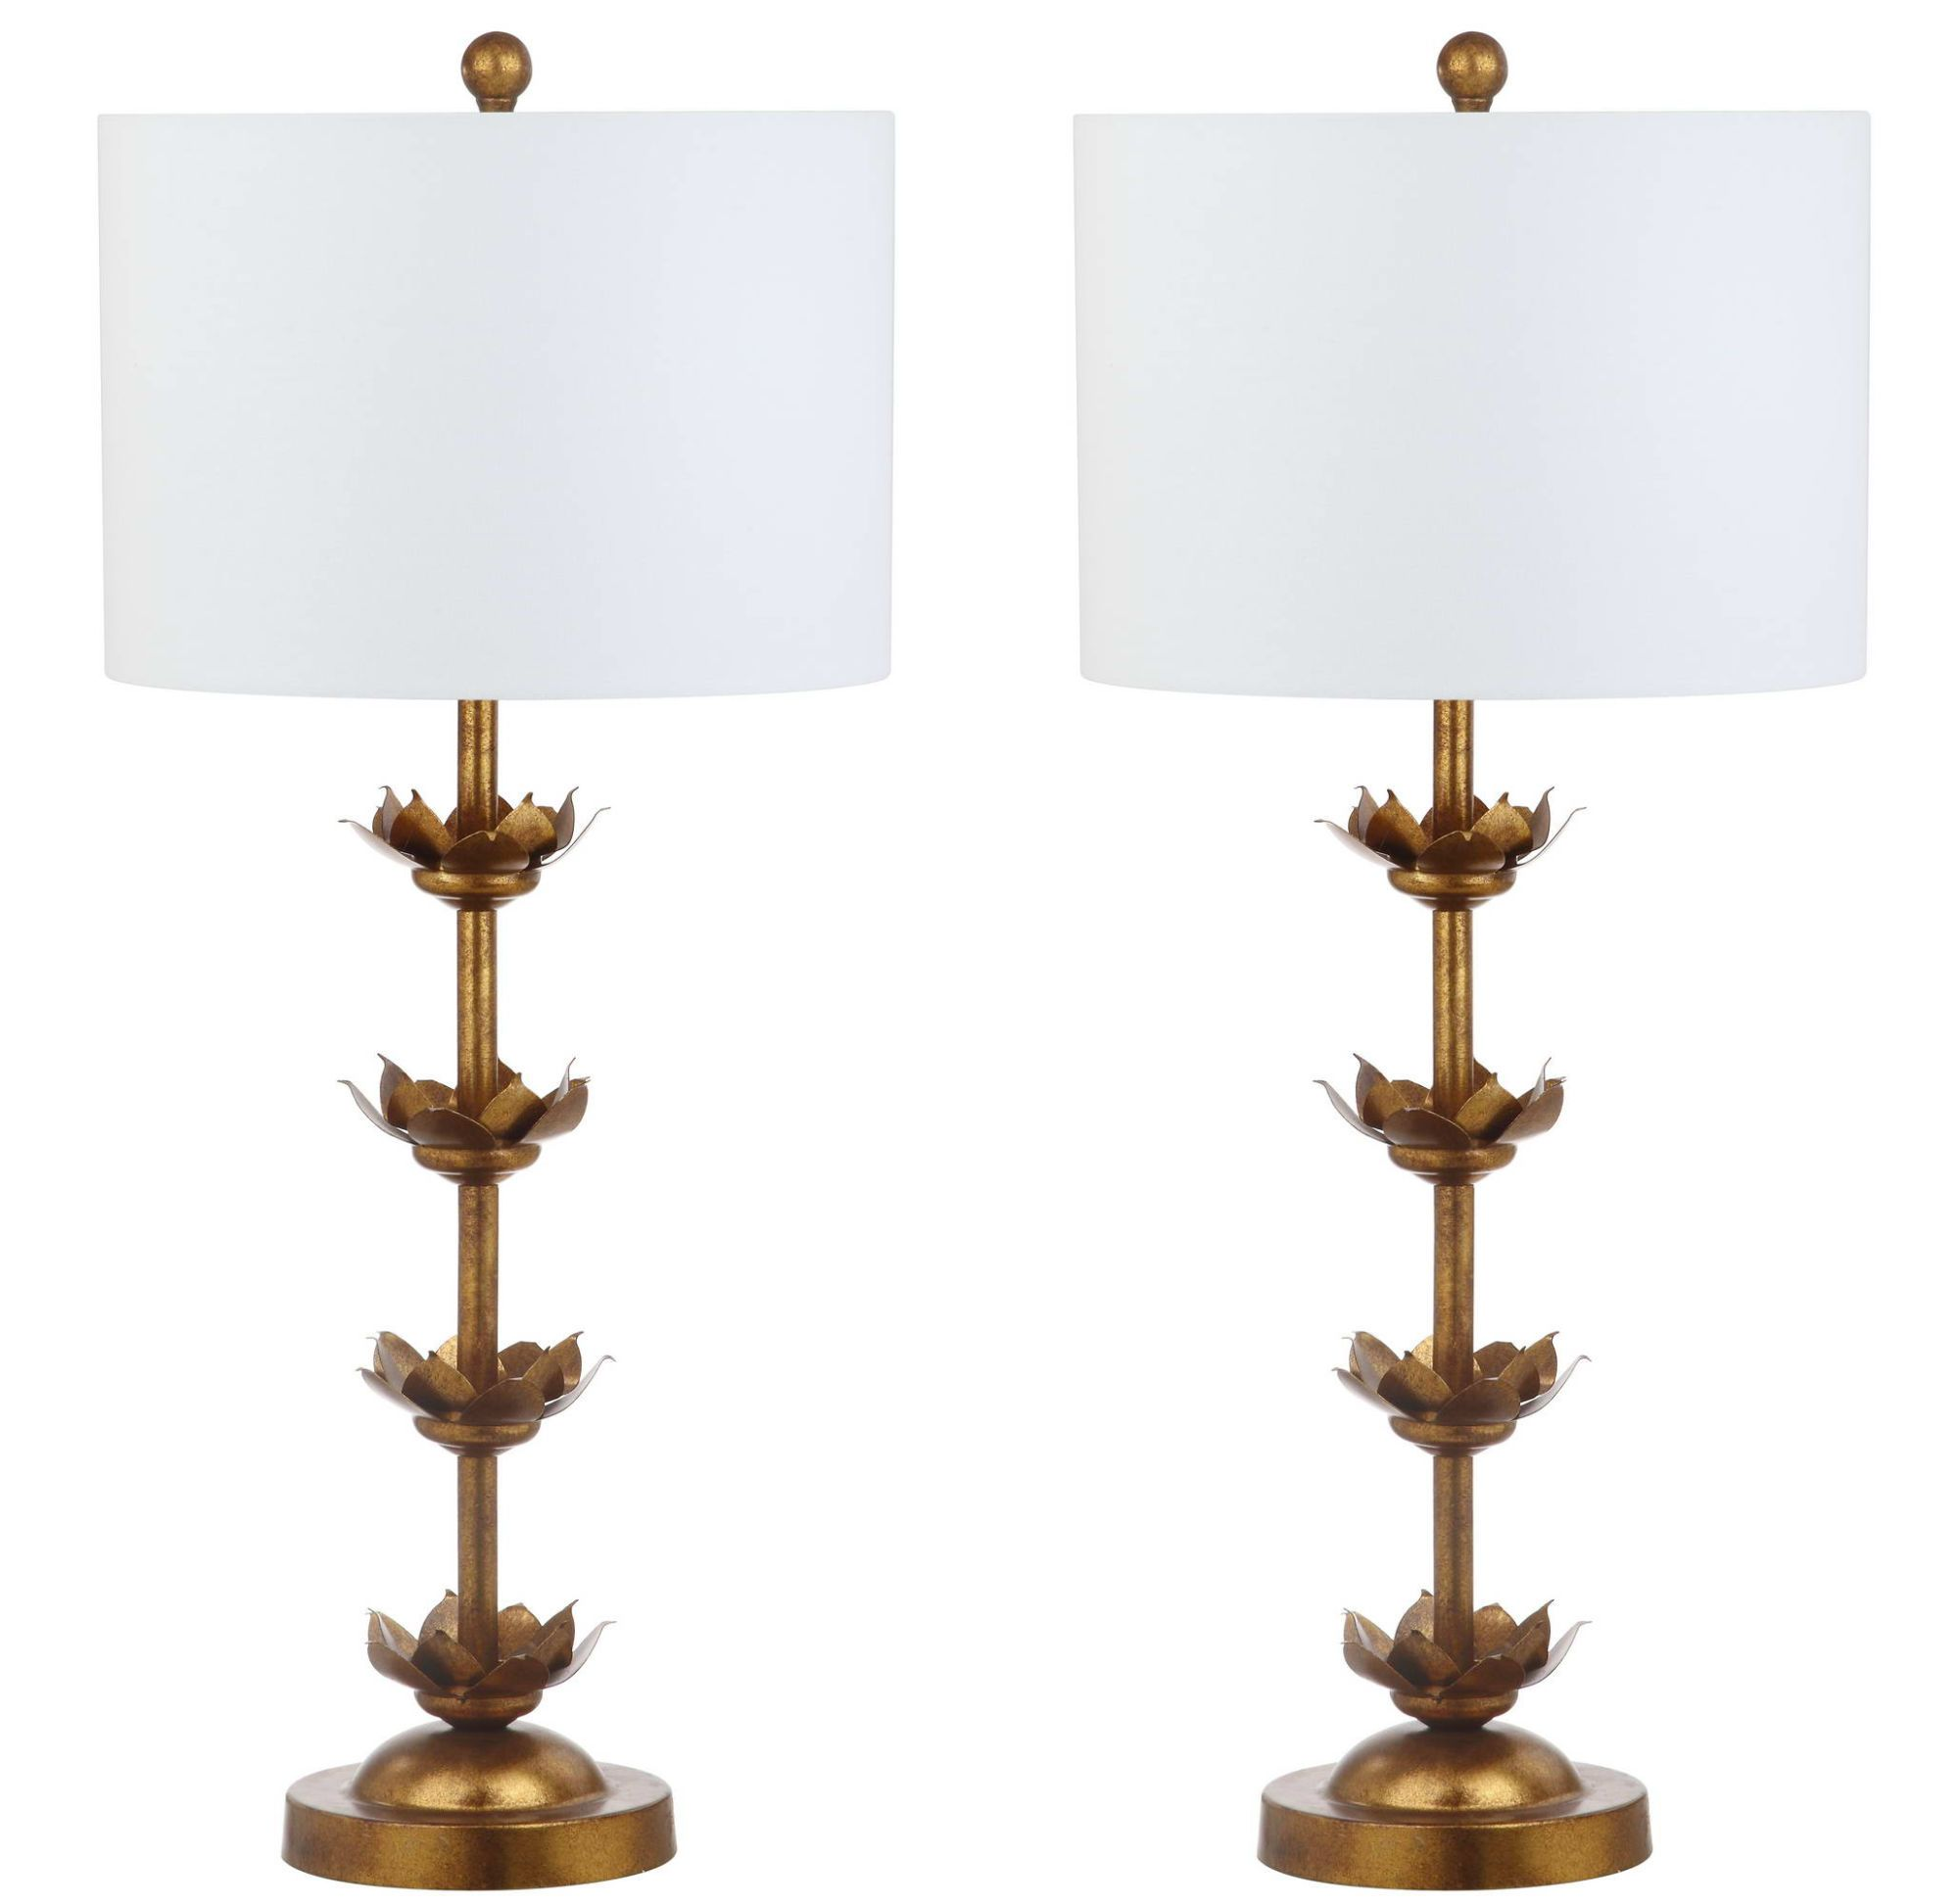 Lani Leaf 32 Inch H Table Lamp Antique Table Lamps Table Lamp Gold Table Lamp